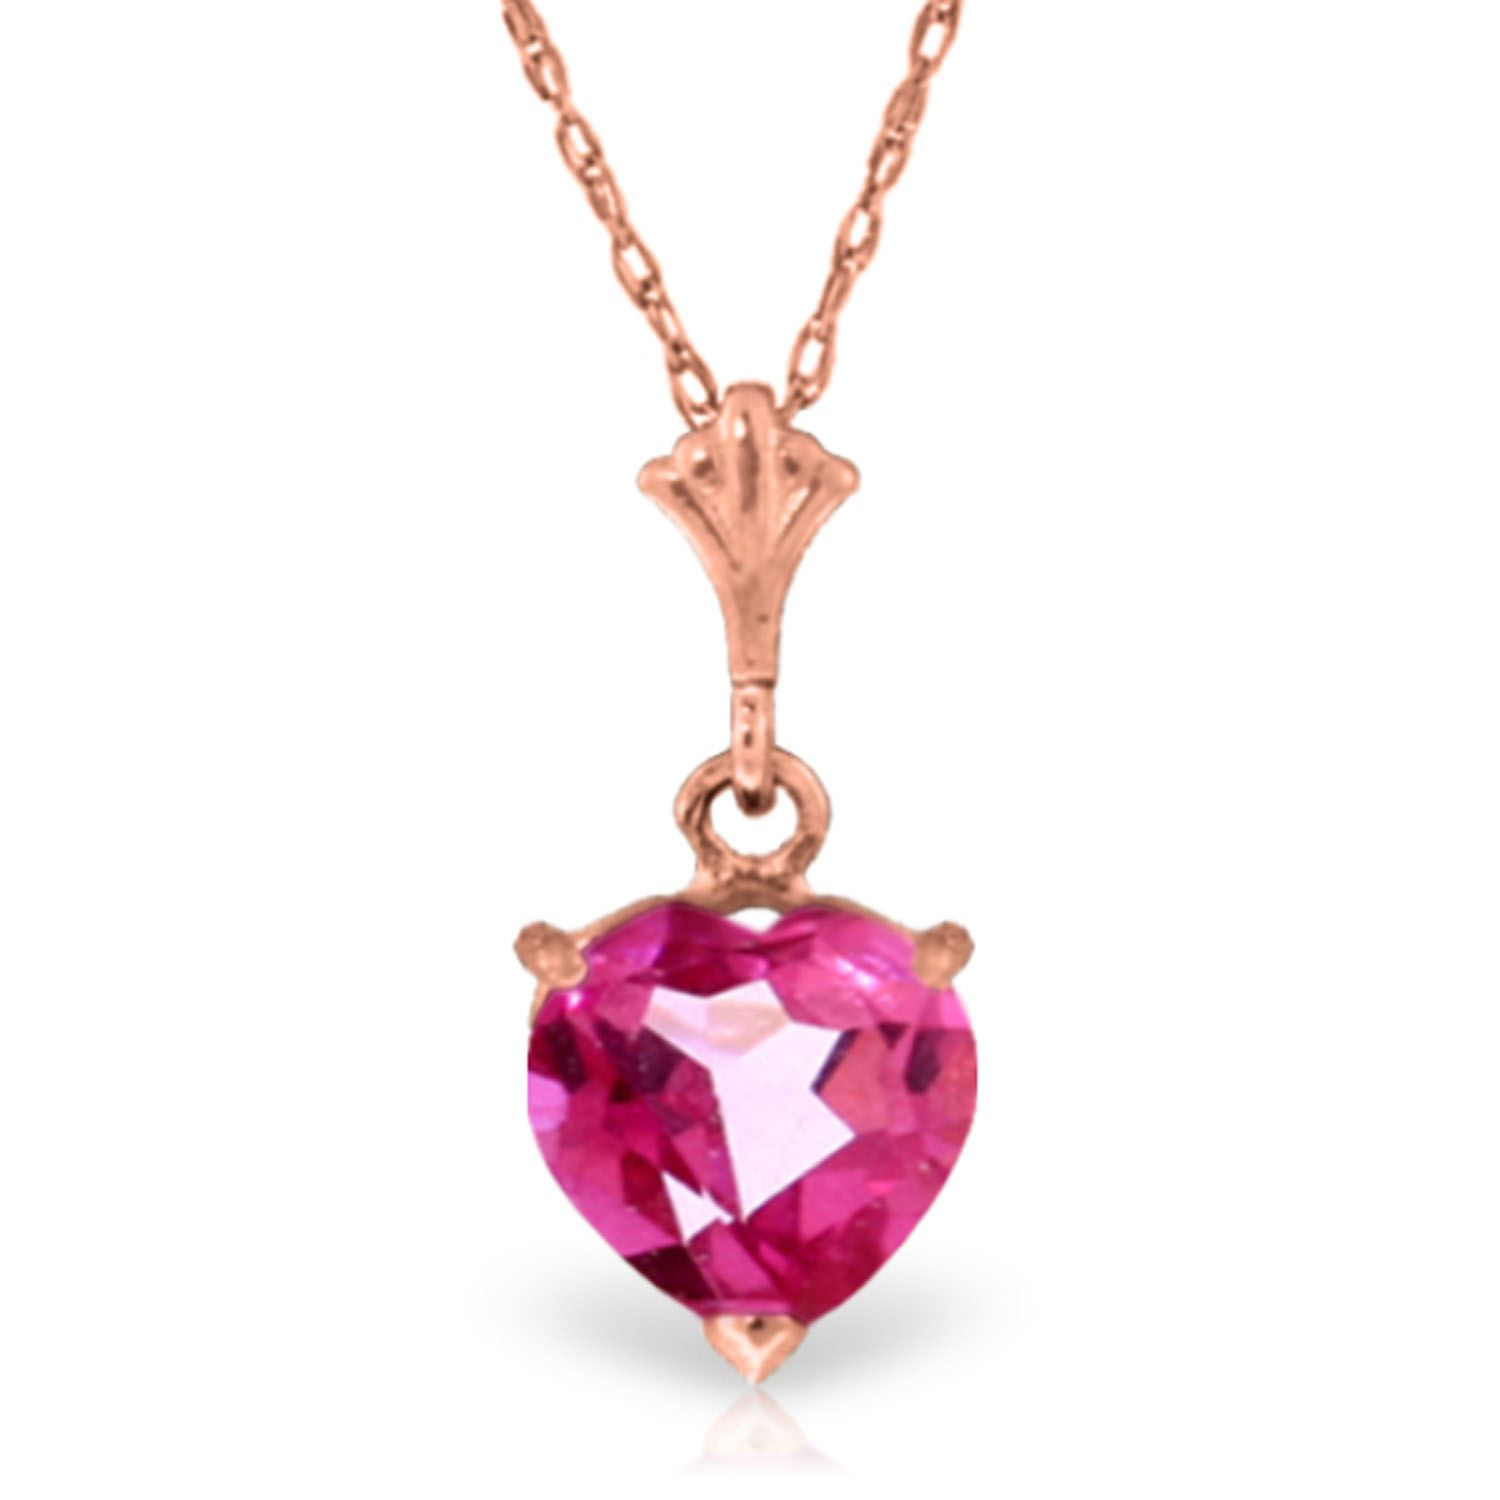 ALARRI 14K Solid Rose Gold Necklace w// Natural Diamond /& Garnet with 20 Inch Chain Length